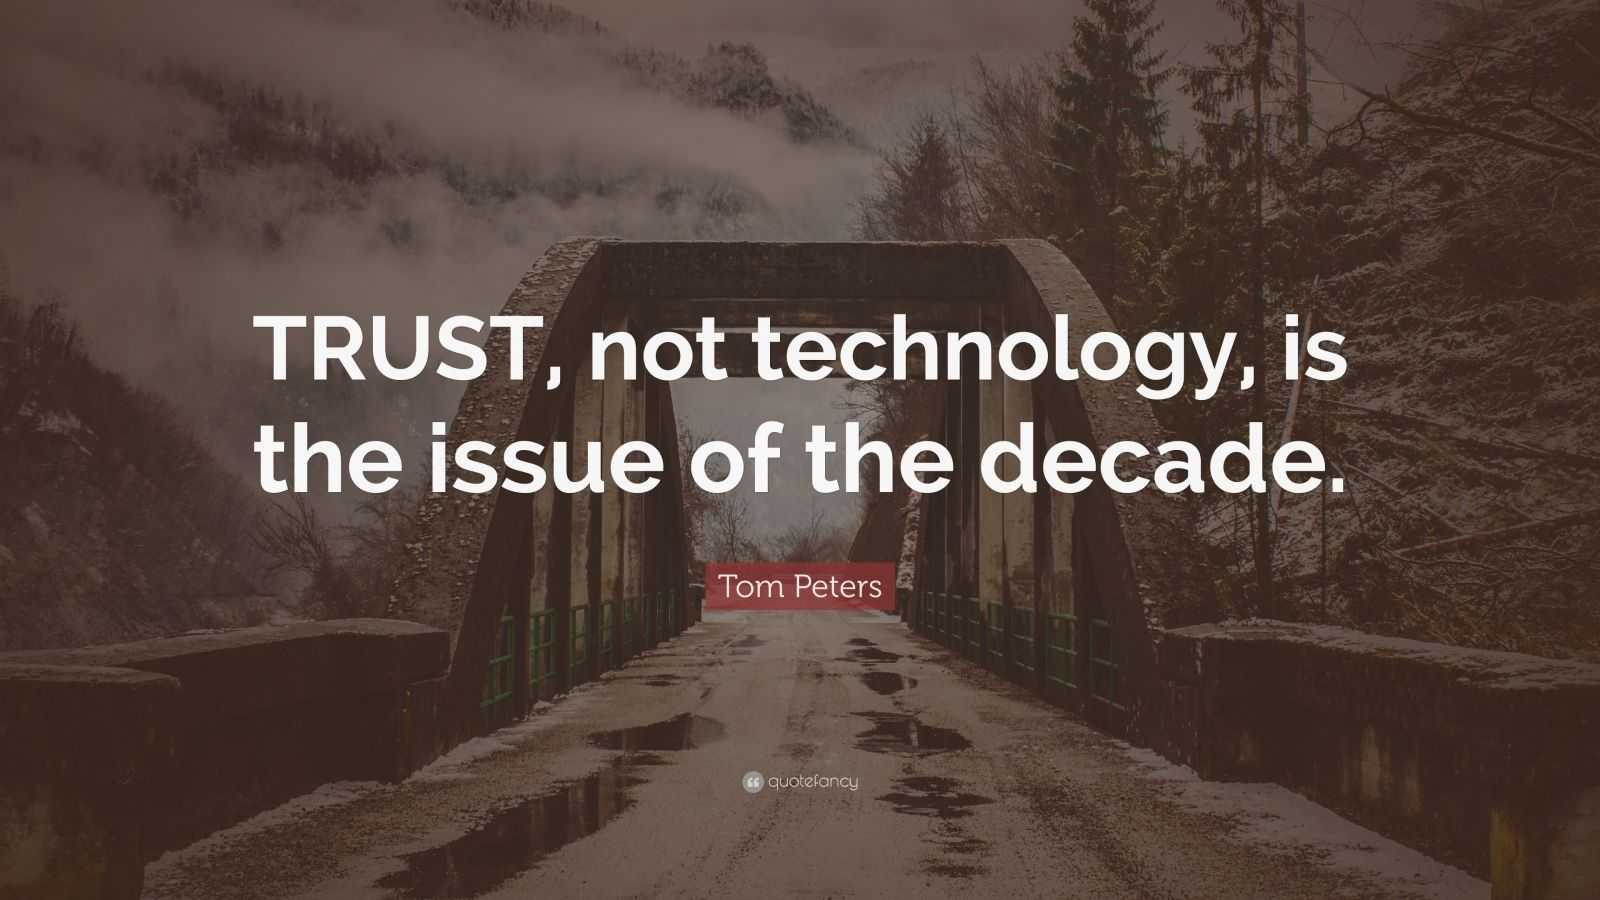 """Tom Peters Quote: """"TRUST, not technology, is the issue of the decade."""""""